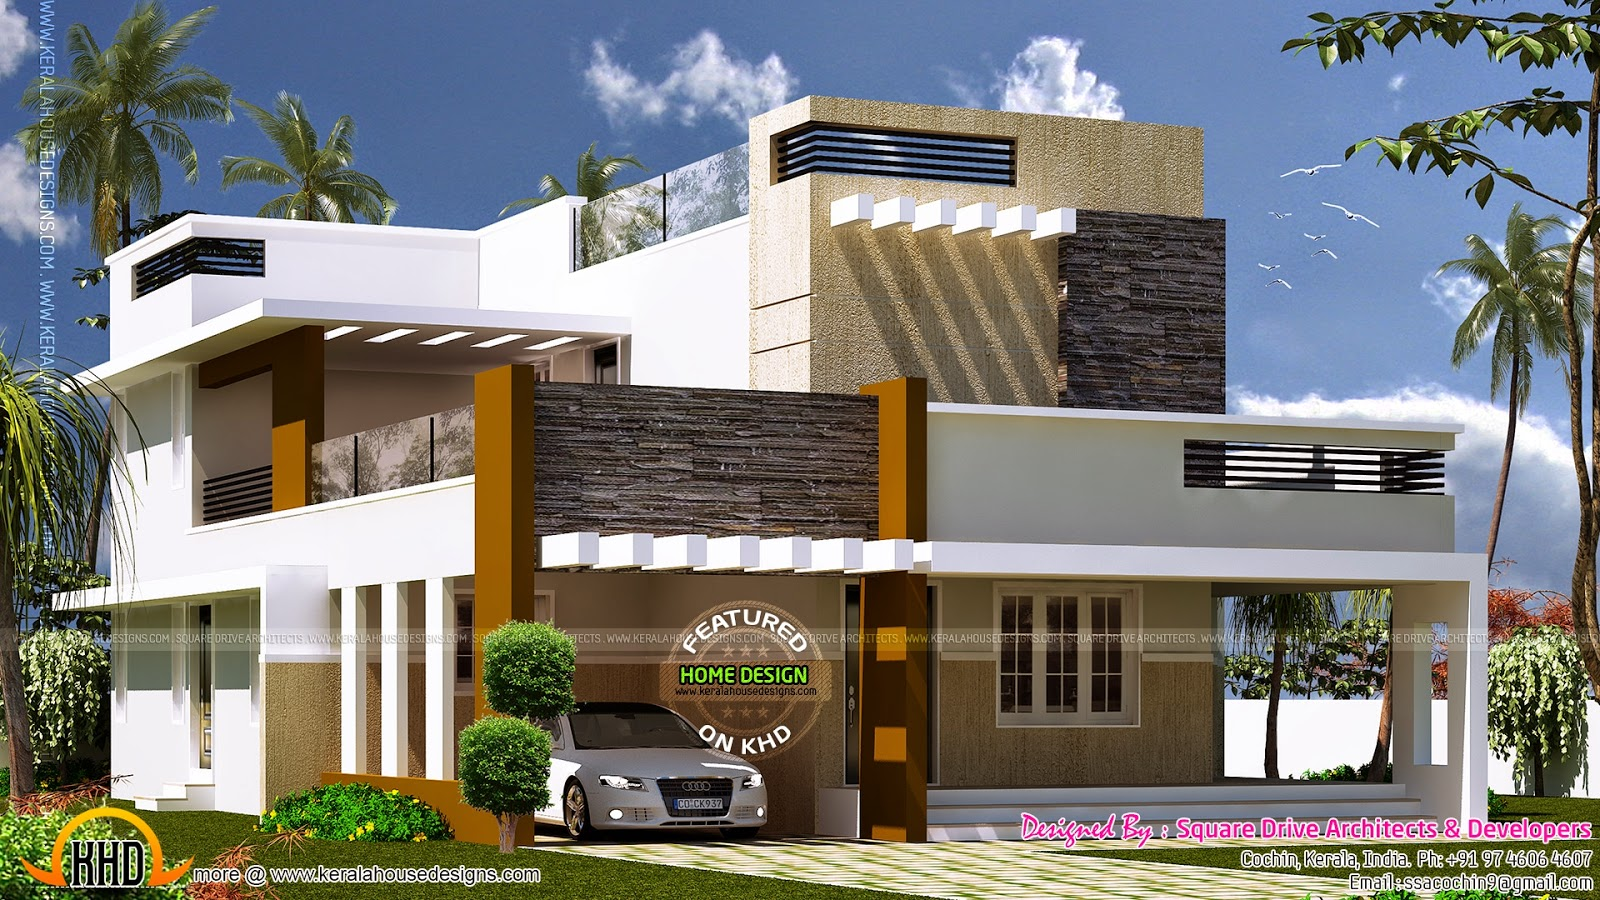 Exterior design of contemporary villa kerala home design Indian home exterior design photos